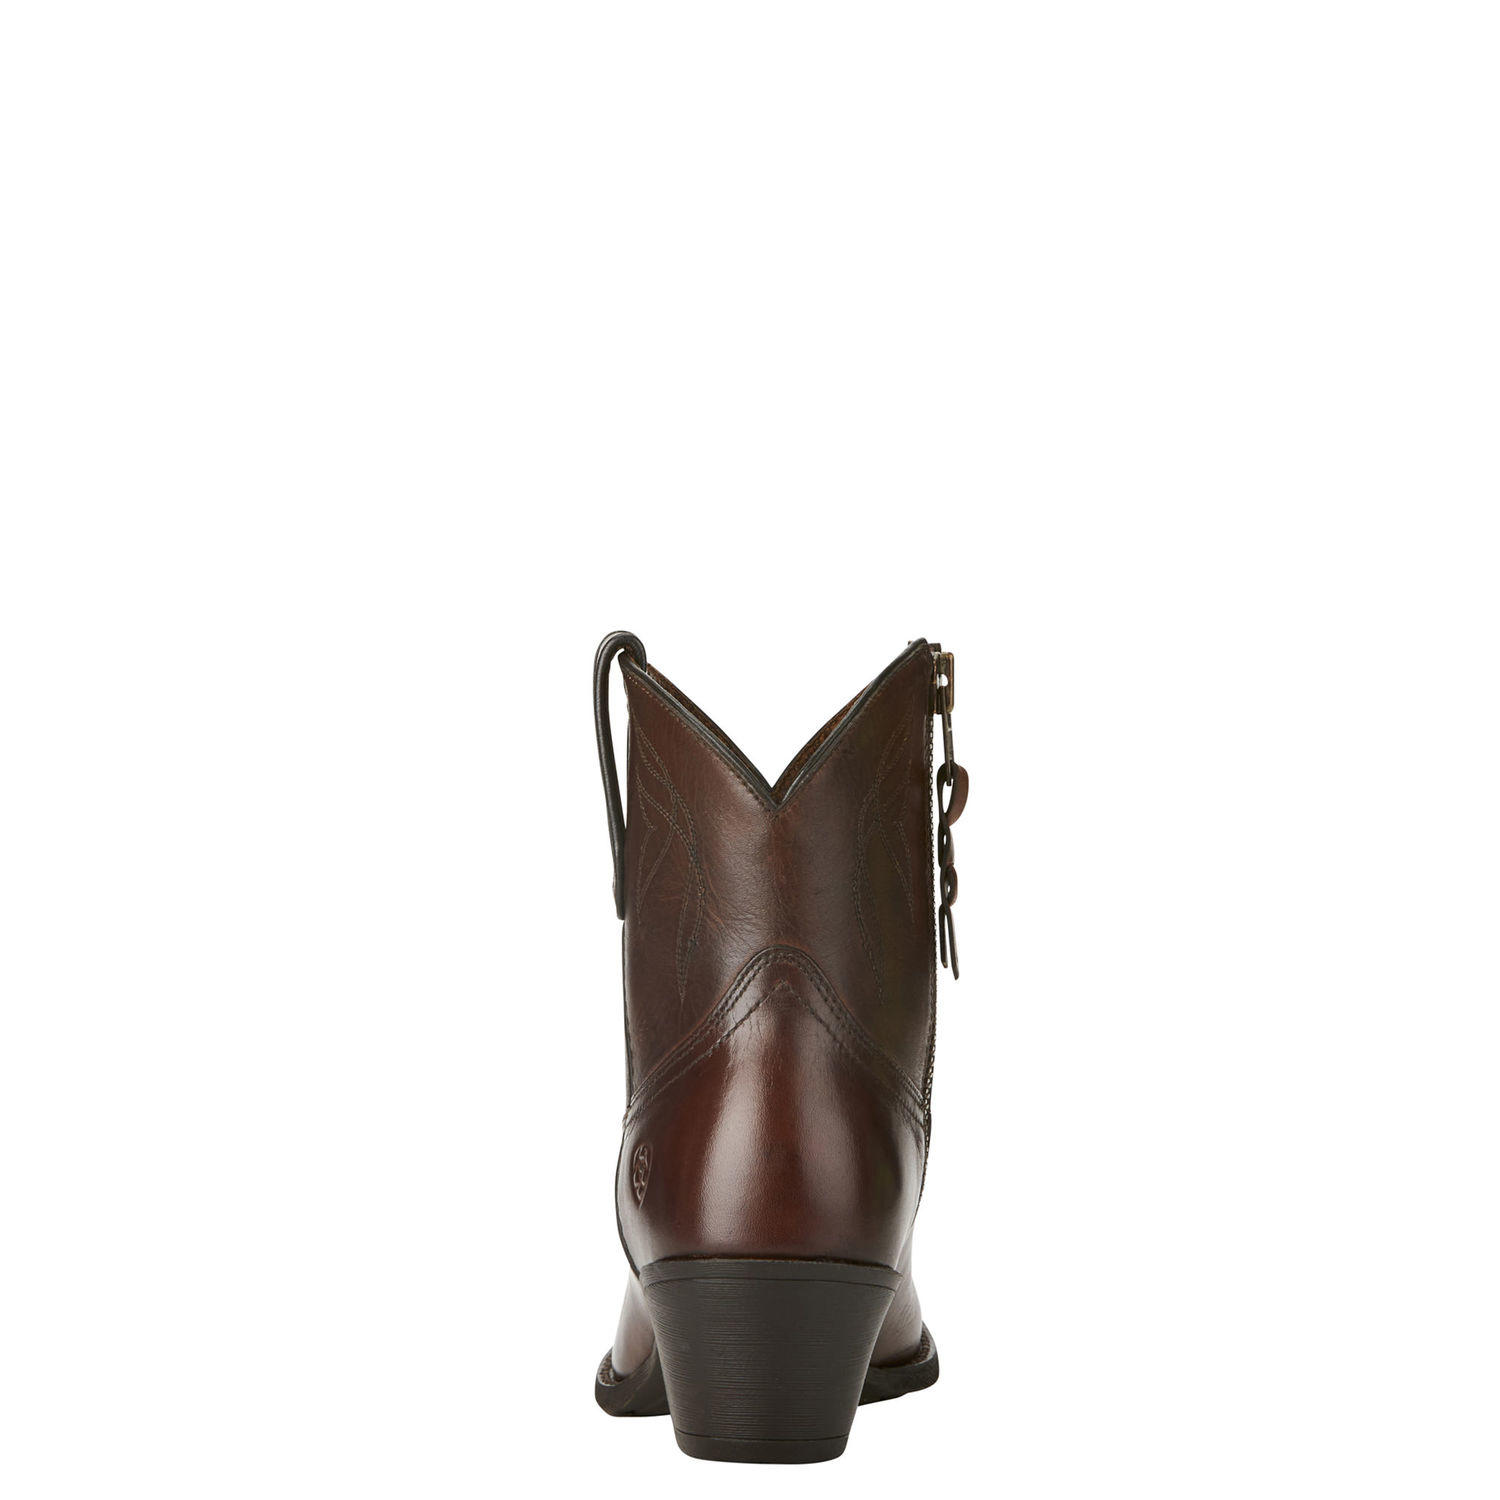 Ladies western fashion boot Darlin STYLE # 10021621 shaft